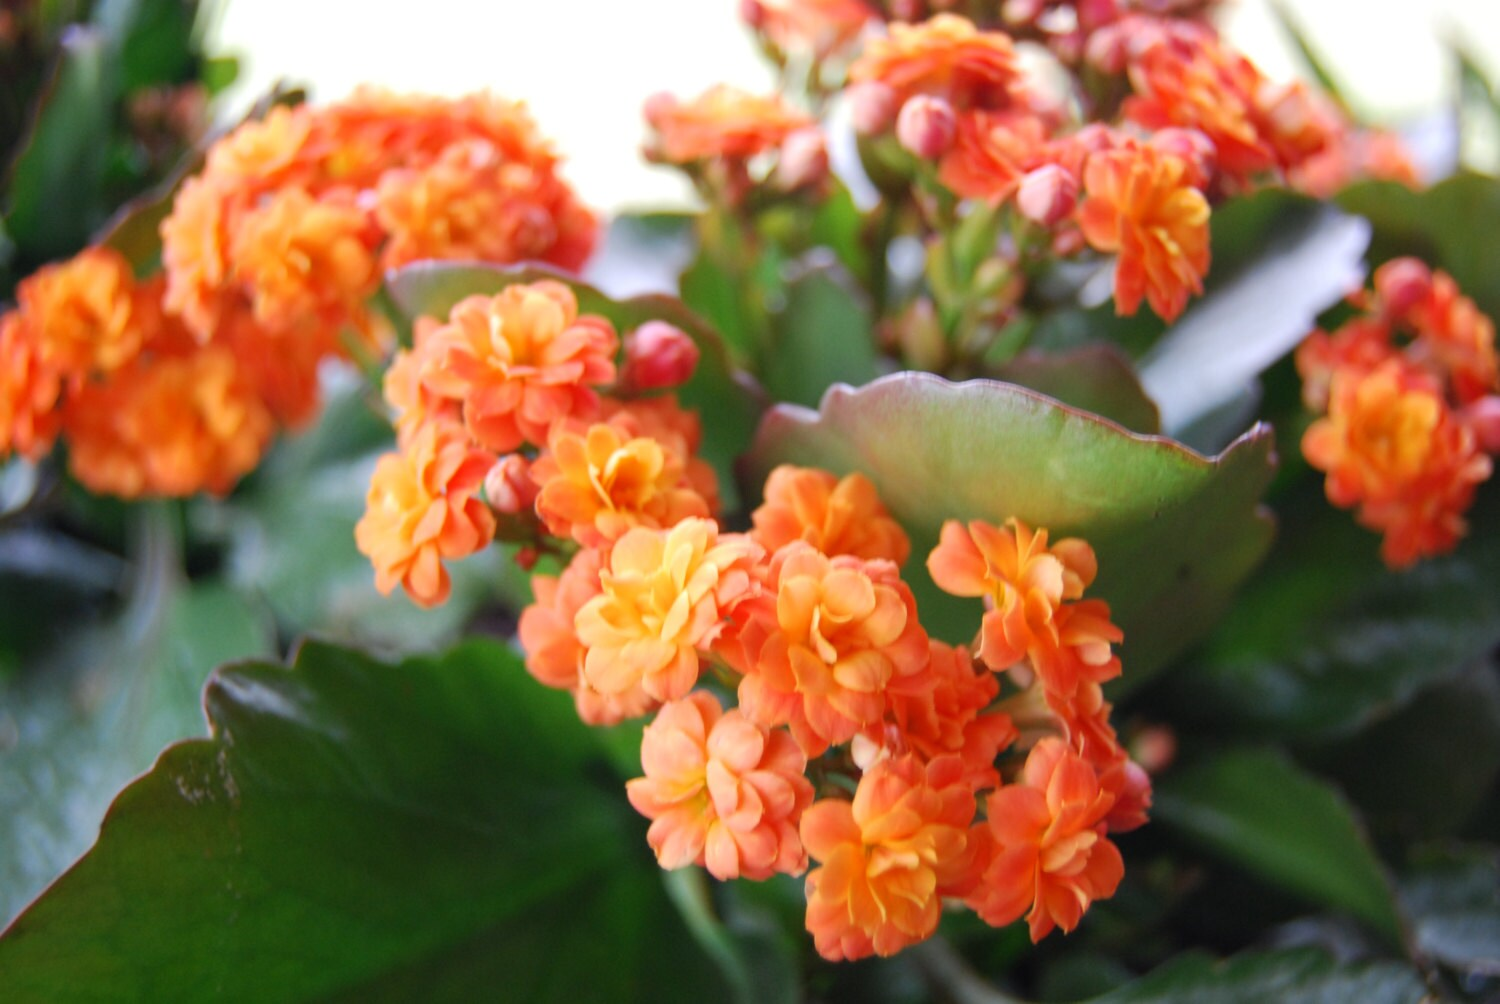 Lantana Kopen Kalanchoe Blossfeldiana Miniature Rose Flaming Katy Christmas Kalanchoe Pretty Flower Live Plant Easy Care